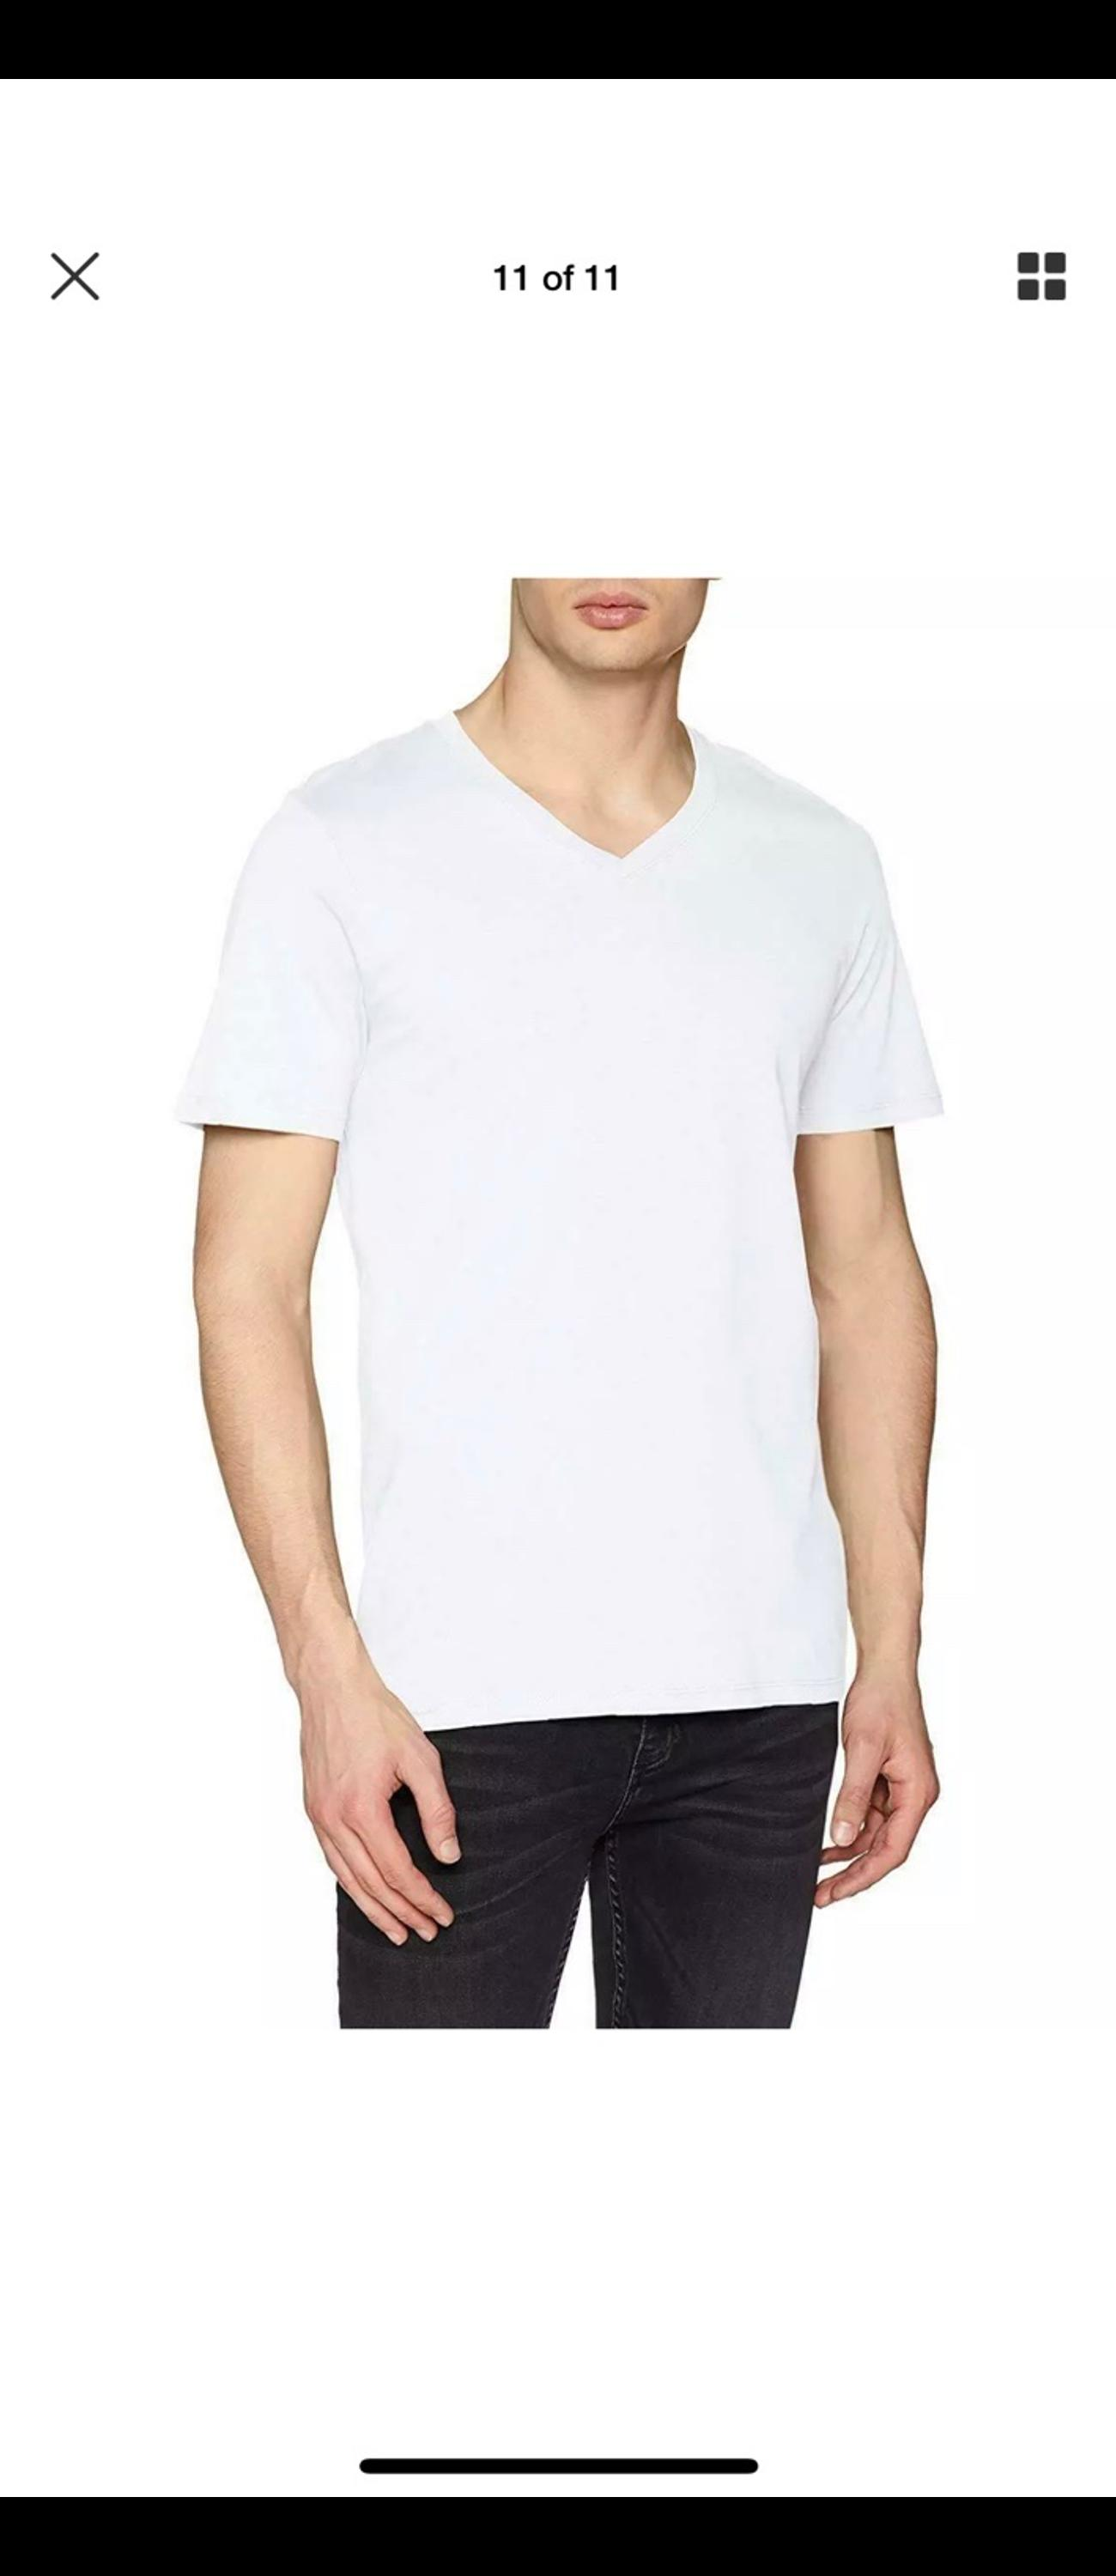 ONLY COTTON WHITE SHORT SLEEVE T SHIRT V NECK SIZE L POCKET RRP £12 SALE £4.99